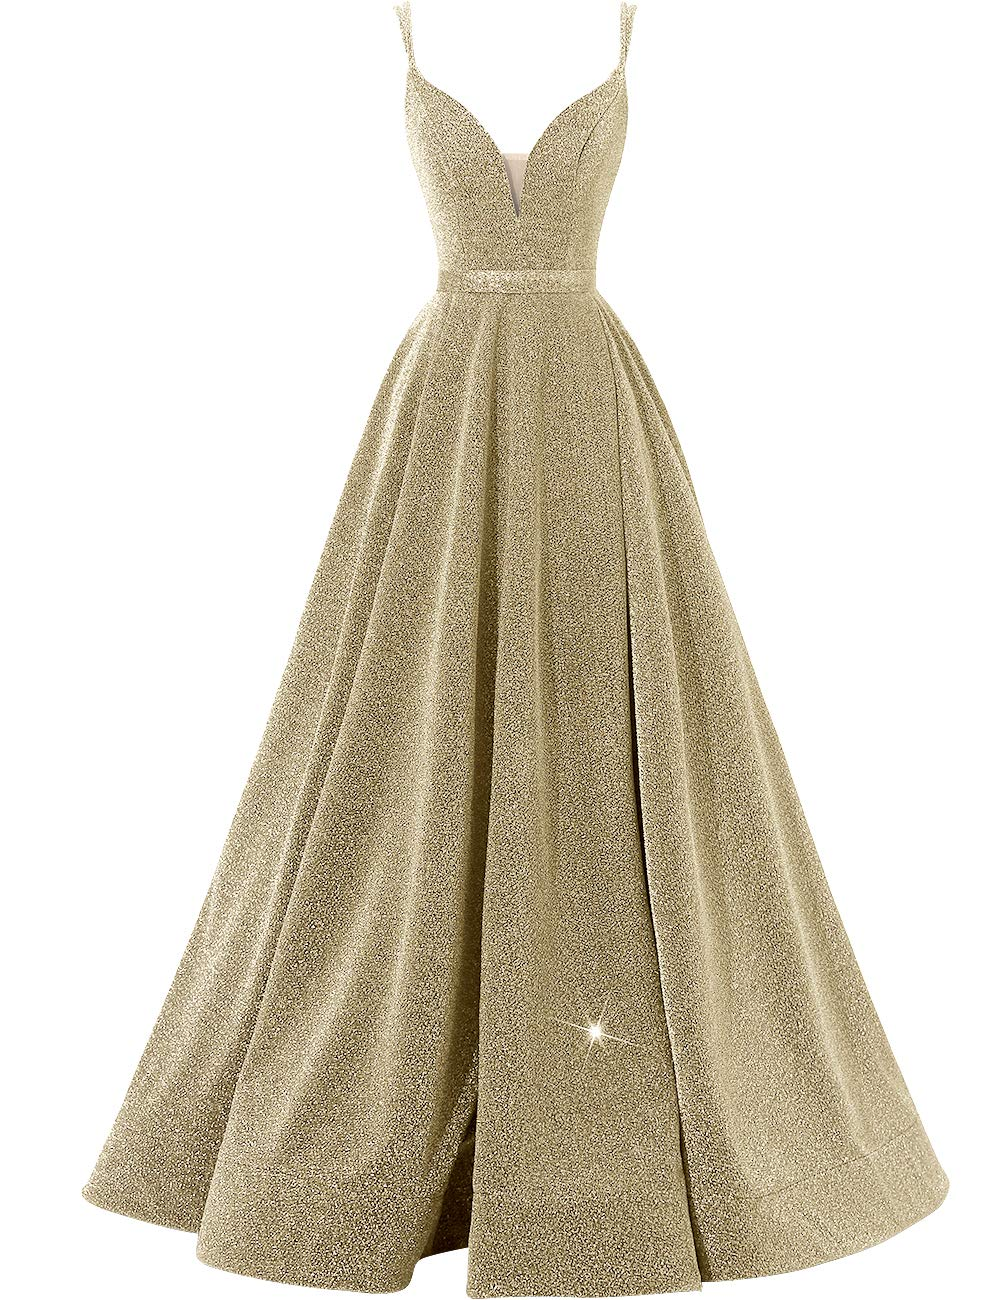 Women's Glittery Spaghetti V-Neck Prom Dresses Long Side Split Formal Evening Gowns Gold